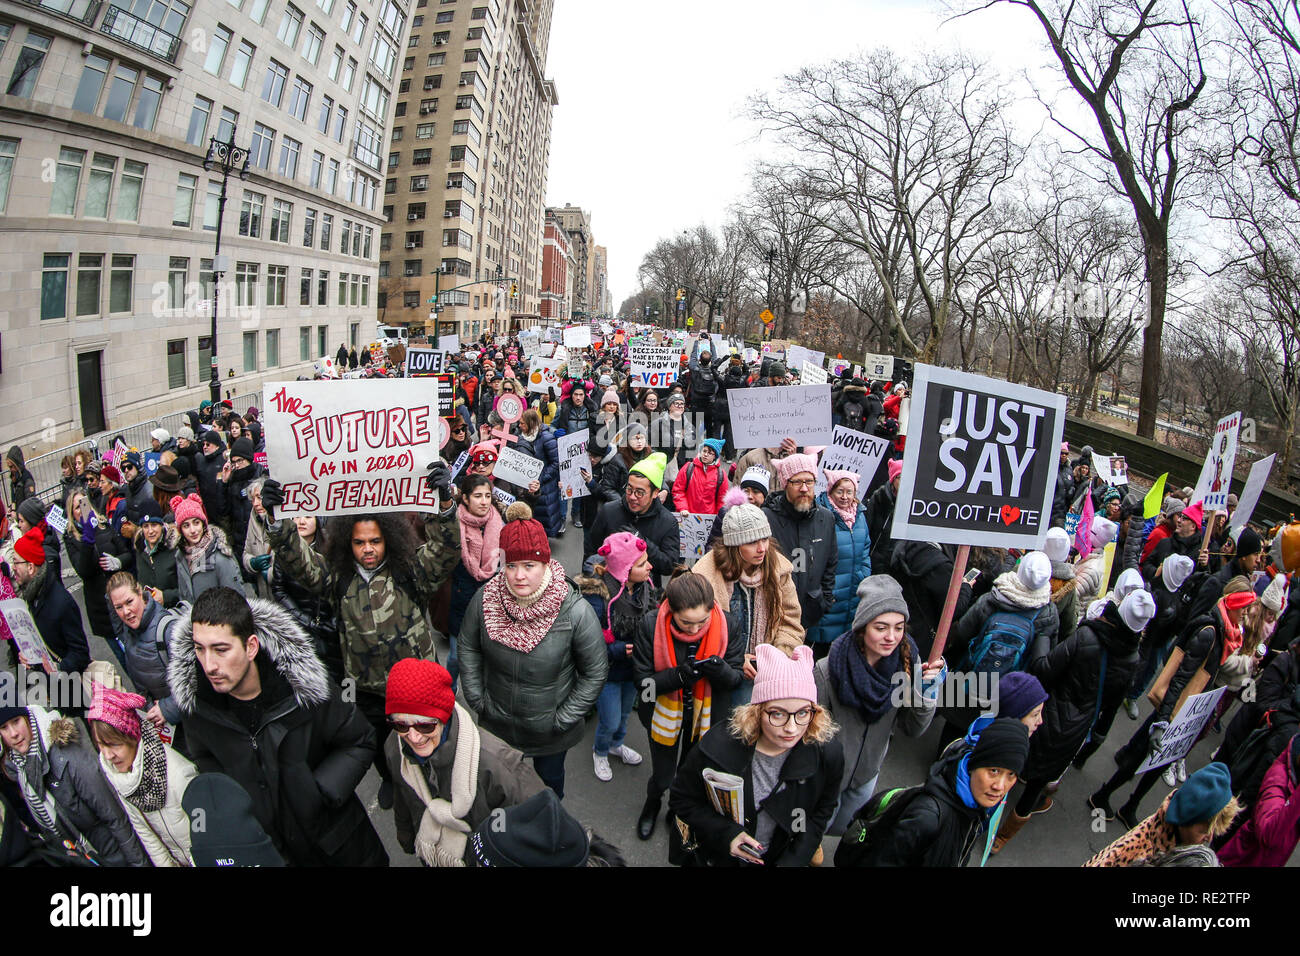 January 19th 2020 Events New York.New York New York Usa 19th Jan 2019 People Participate